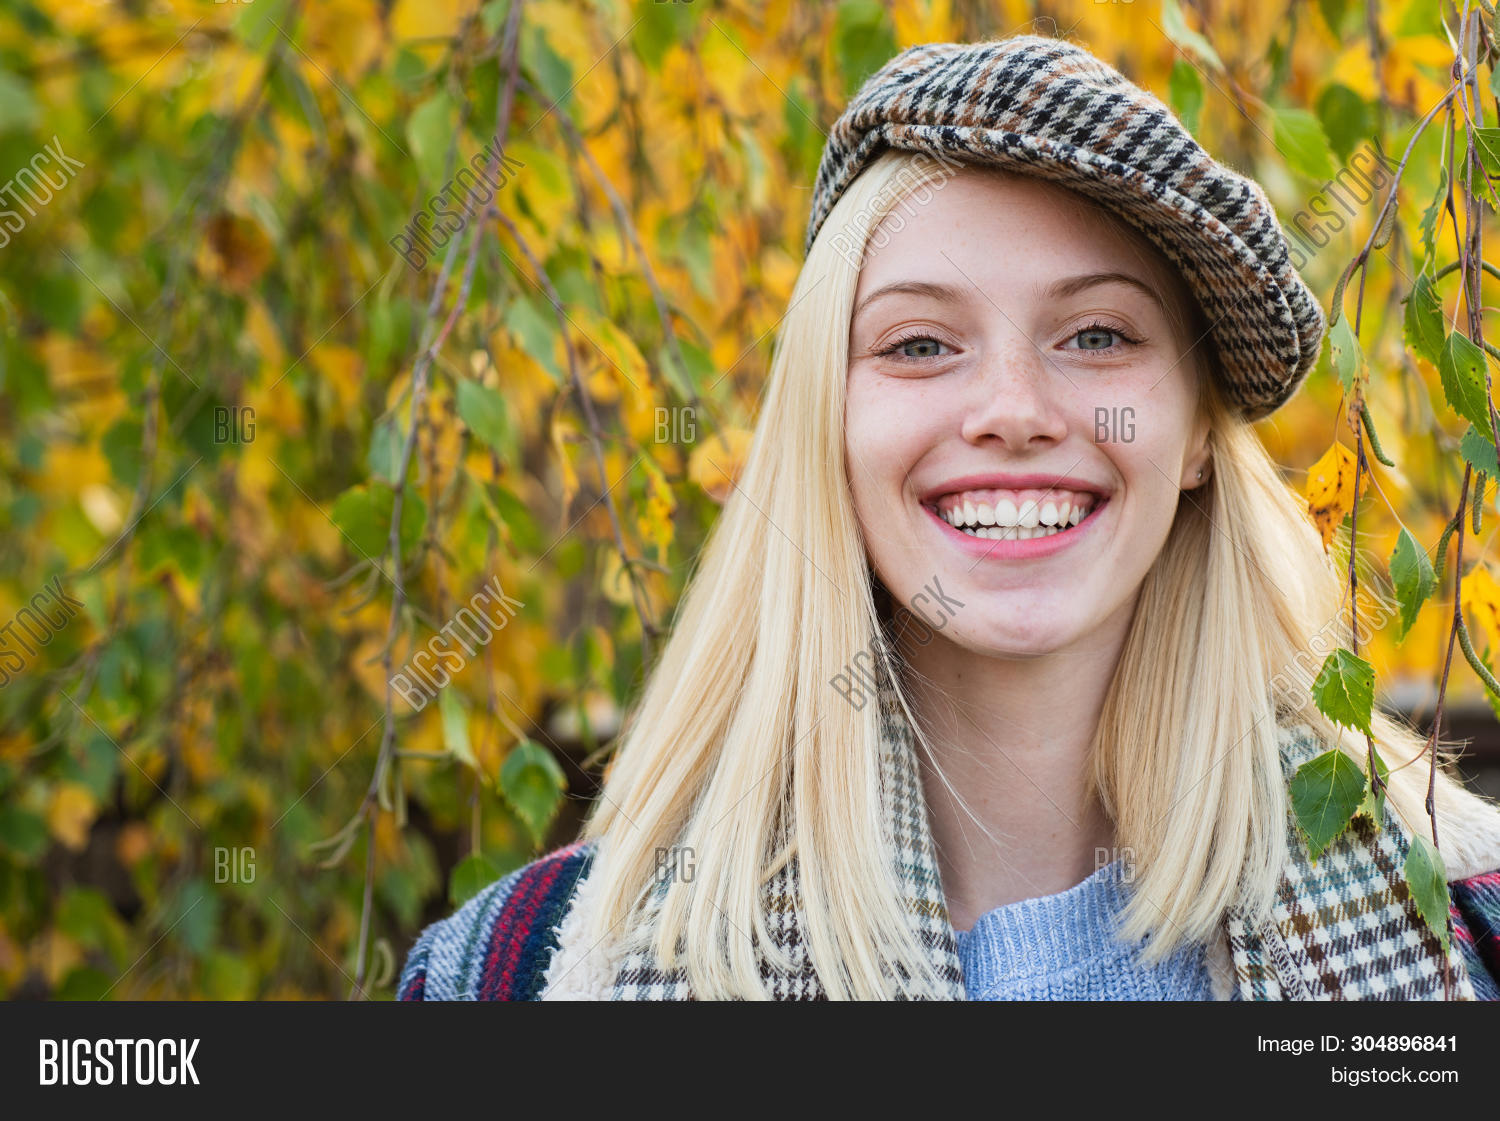 accessory,adorable,autumn,background,beauty,blonde,checkered,clothes,clothing,coat,concept,cute,enjoy,face,fall,fancy,fashion,fashionable,female,girl,hair,hat,here,is,kepi,lips,long,nature,outfit,plaid,pretty,scarf,season,smile,style,stylish,trend,wear,woman